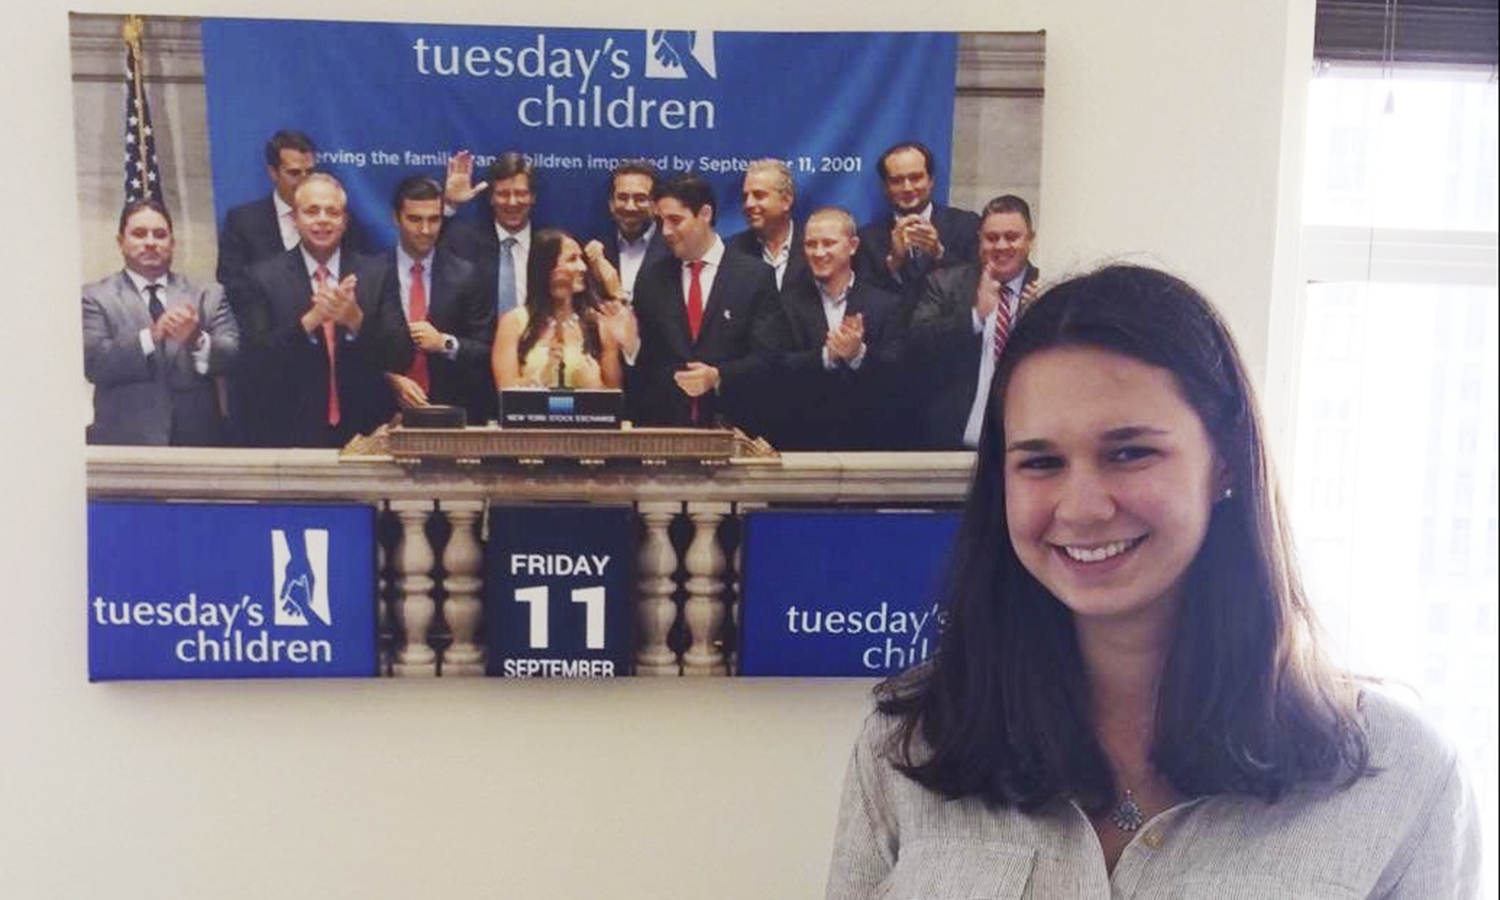 Olivia Bloch '20 poses at Tuesday's Children, a non-profit advocacy group that helps families of victims of 9/11. Bloch is a summer program assistant with the organization.